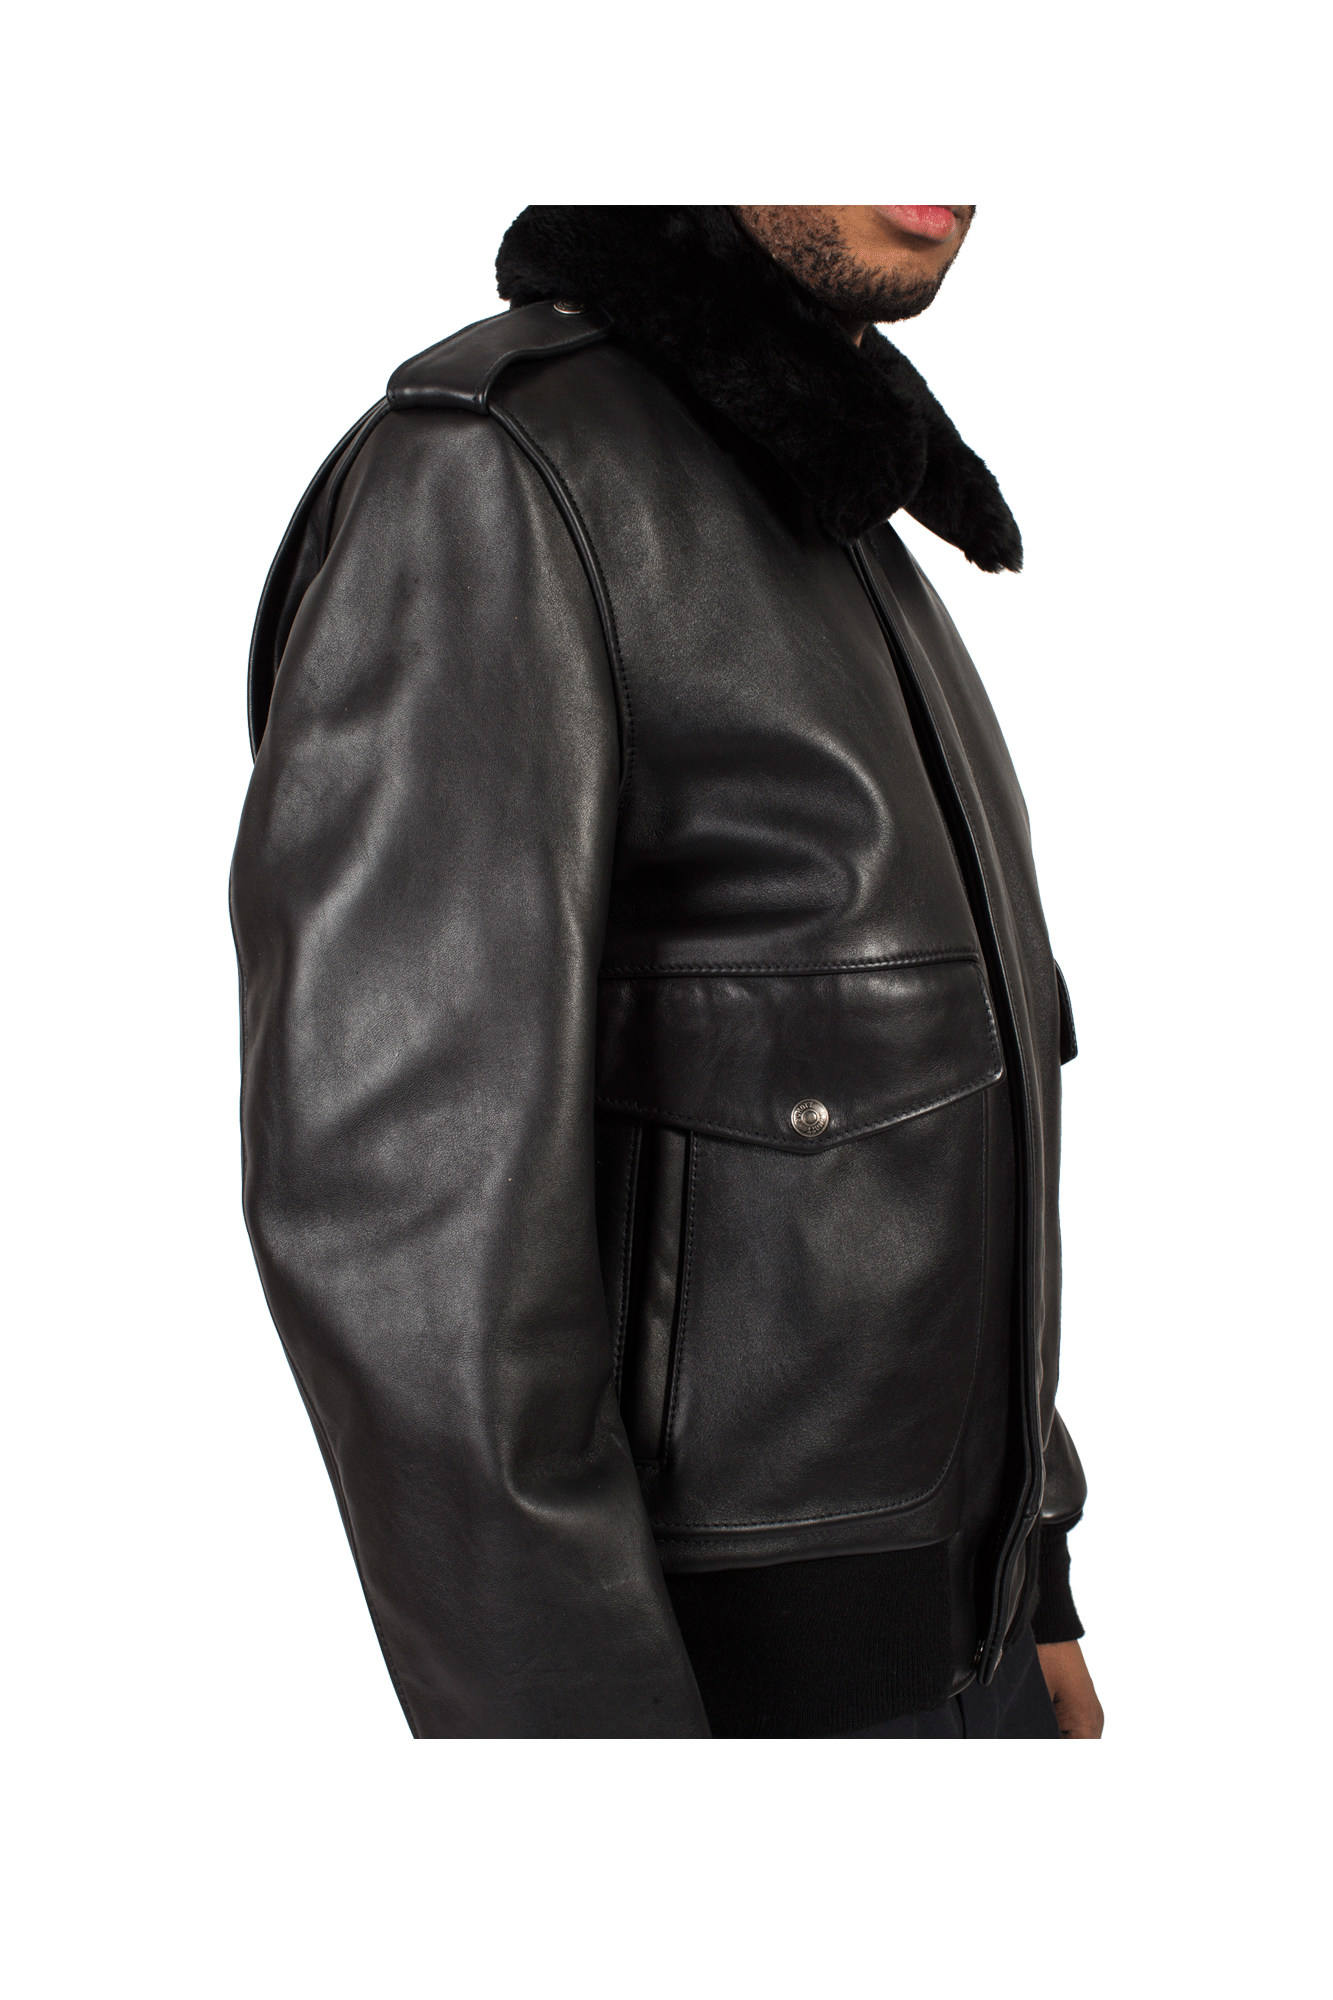 Schott Giacche & Cappotti A-2 Naked Cowhide Leather Flight Jacket Nero 184SMBLACK#000#BLACK#36 - One Block Down